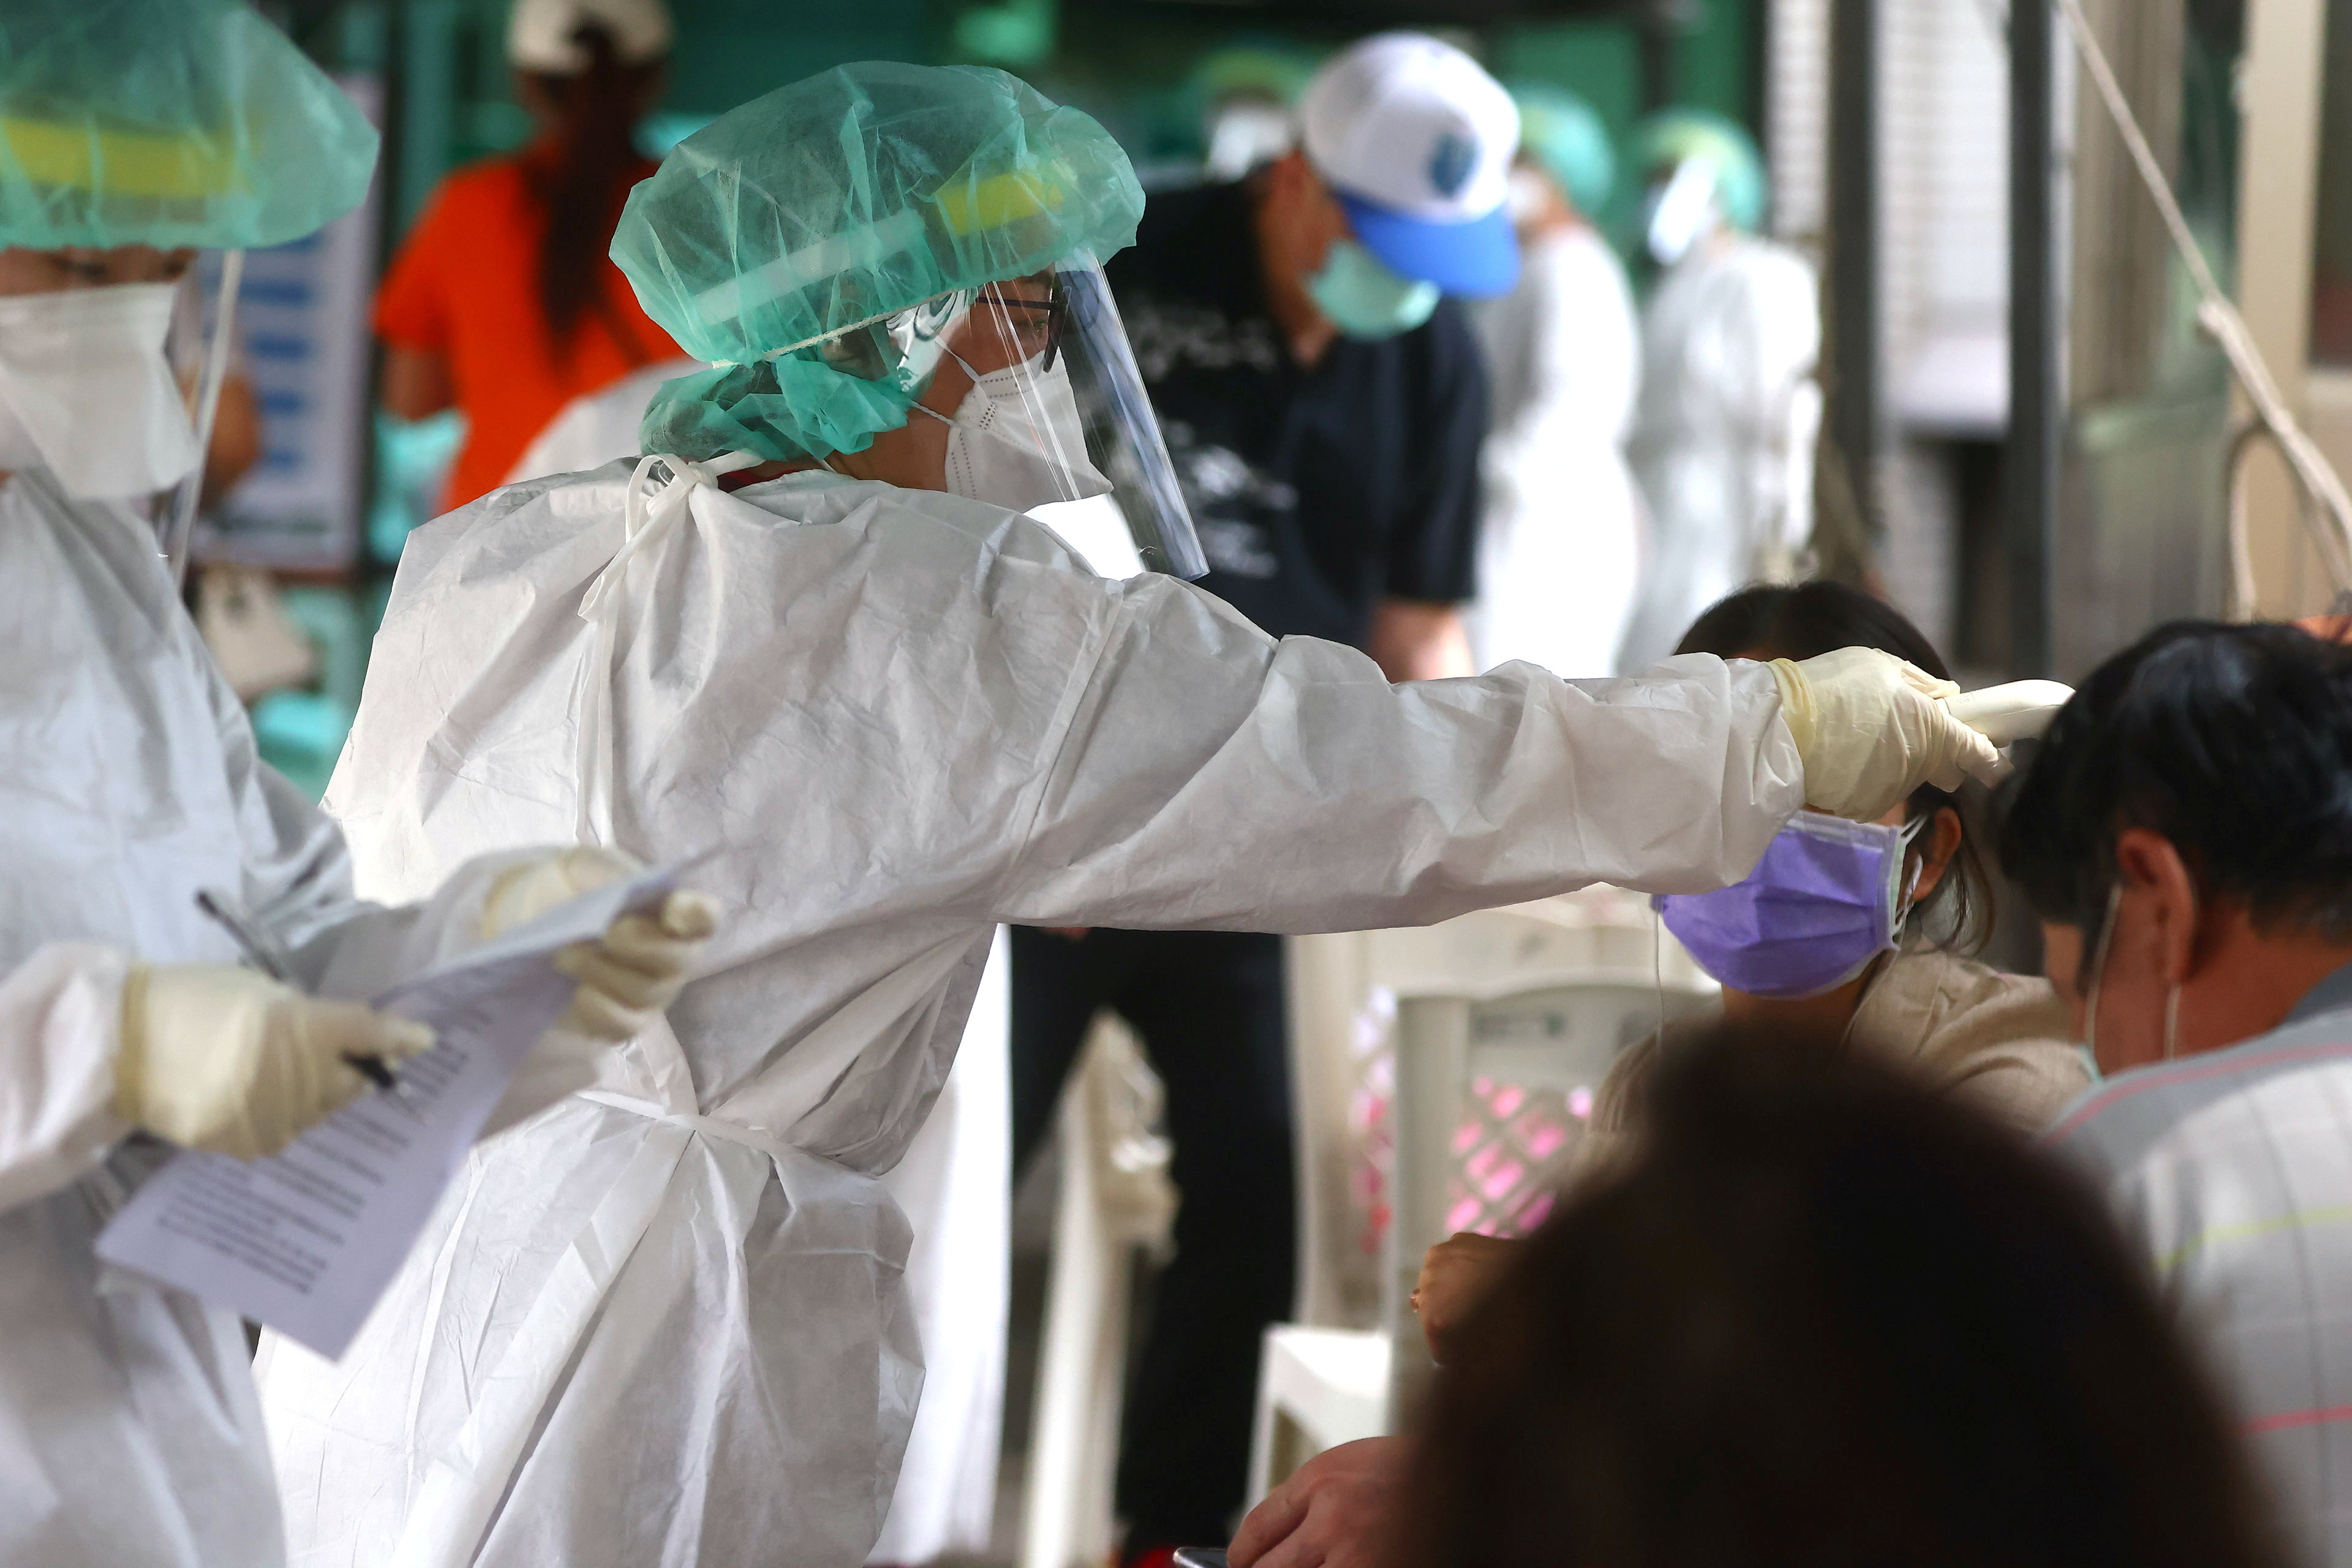 A healthcare frontline worker prepares people to get their rapid test following a surge of coronavirus disease (COVID-19) infections in Taipei, Taiwan May 17, 2021. REUTERS/Ann Wang